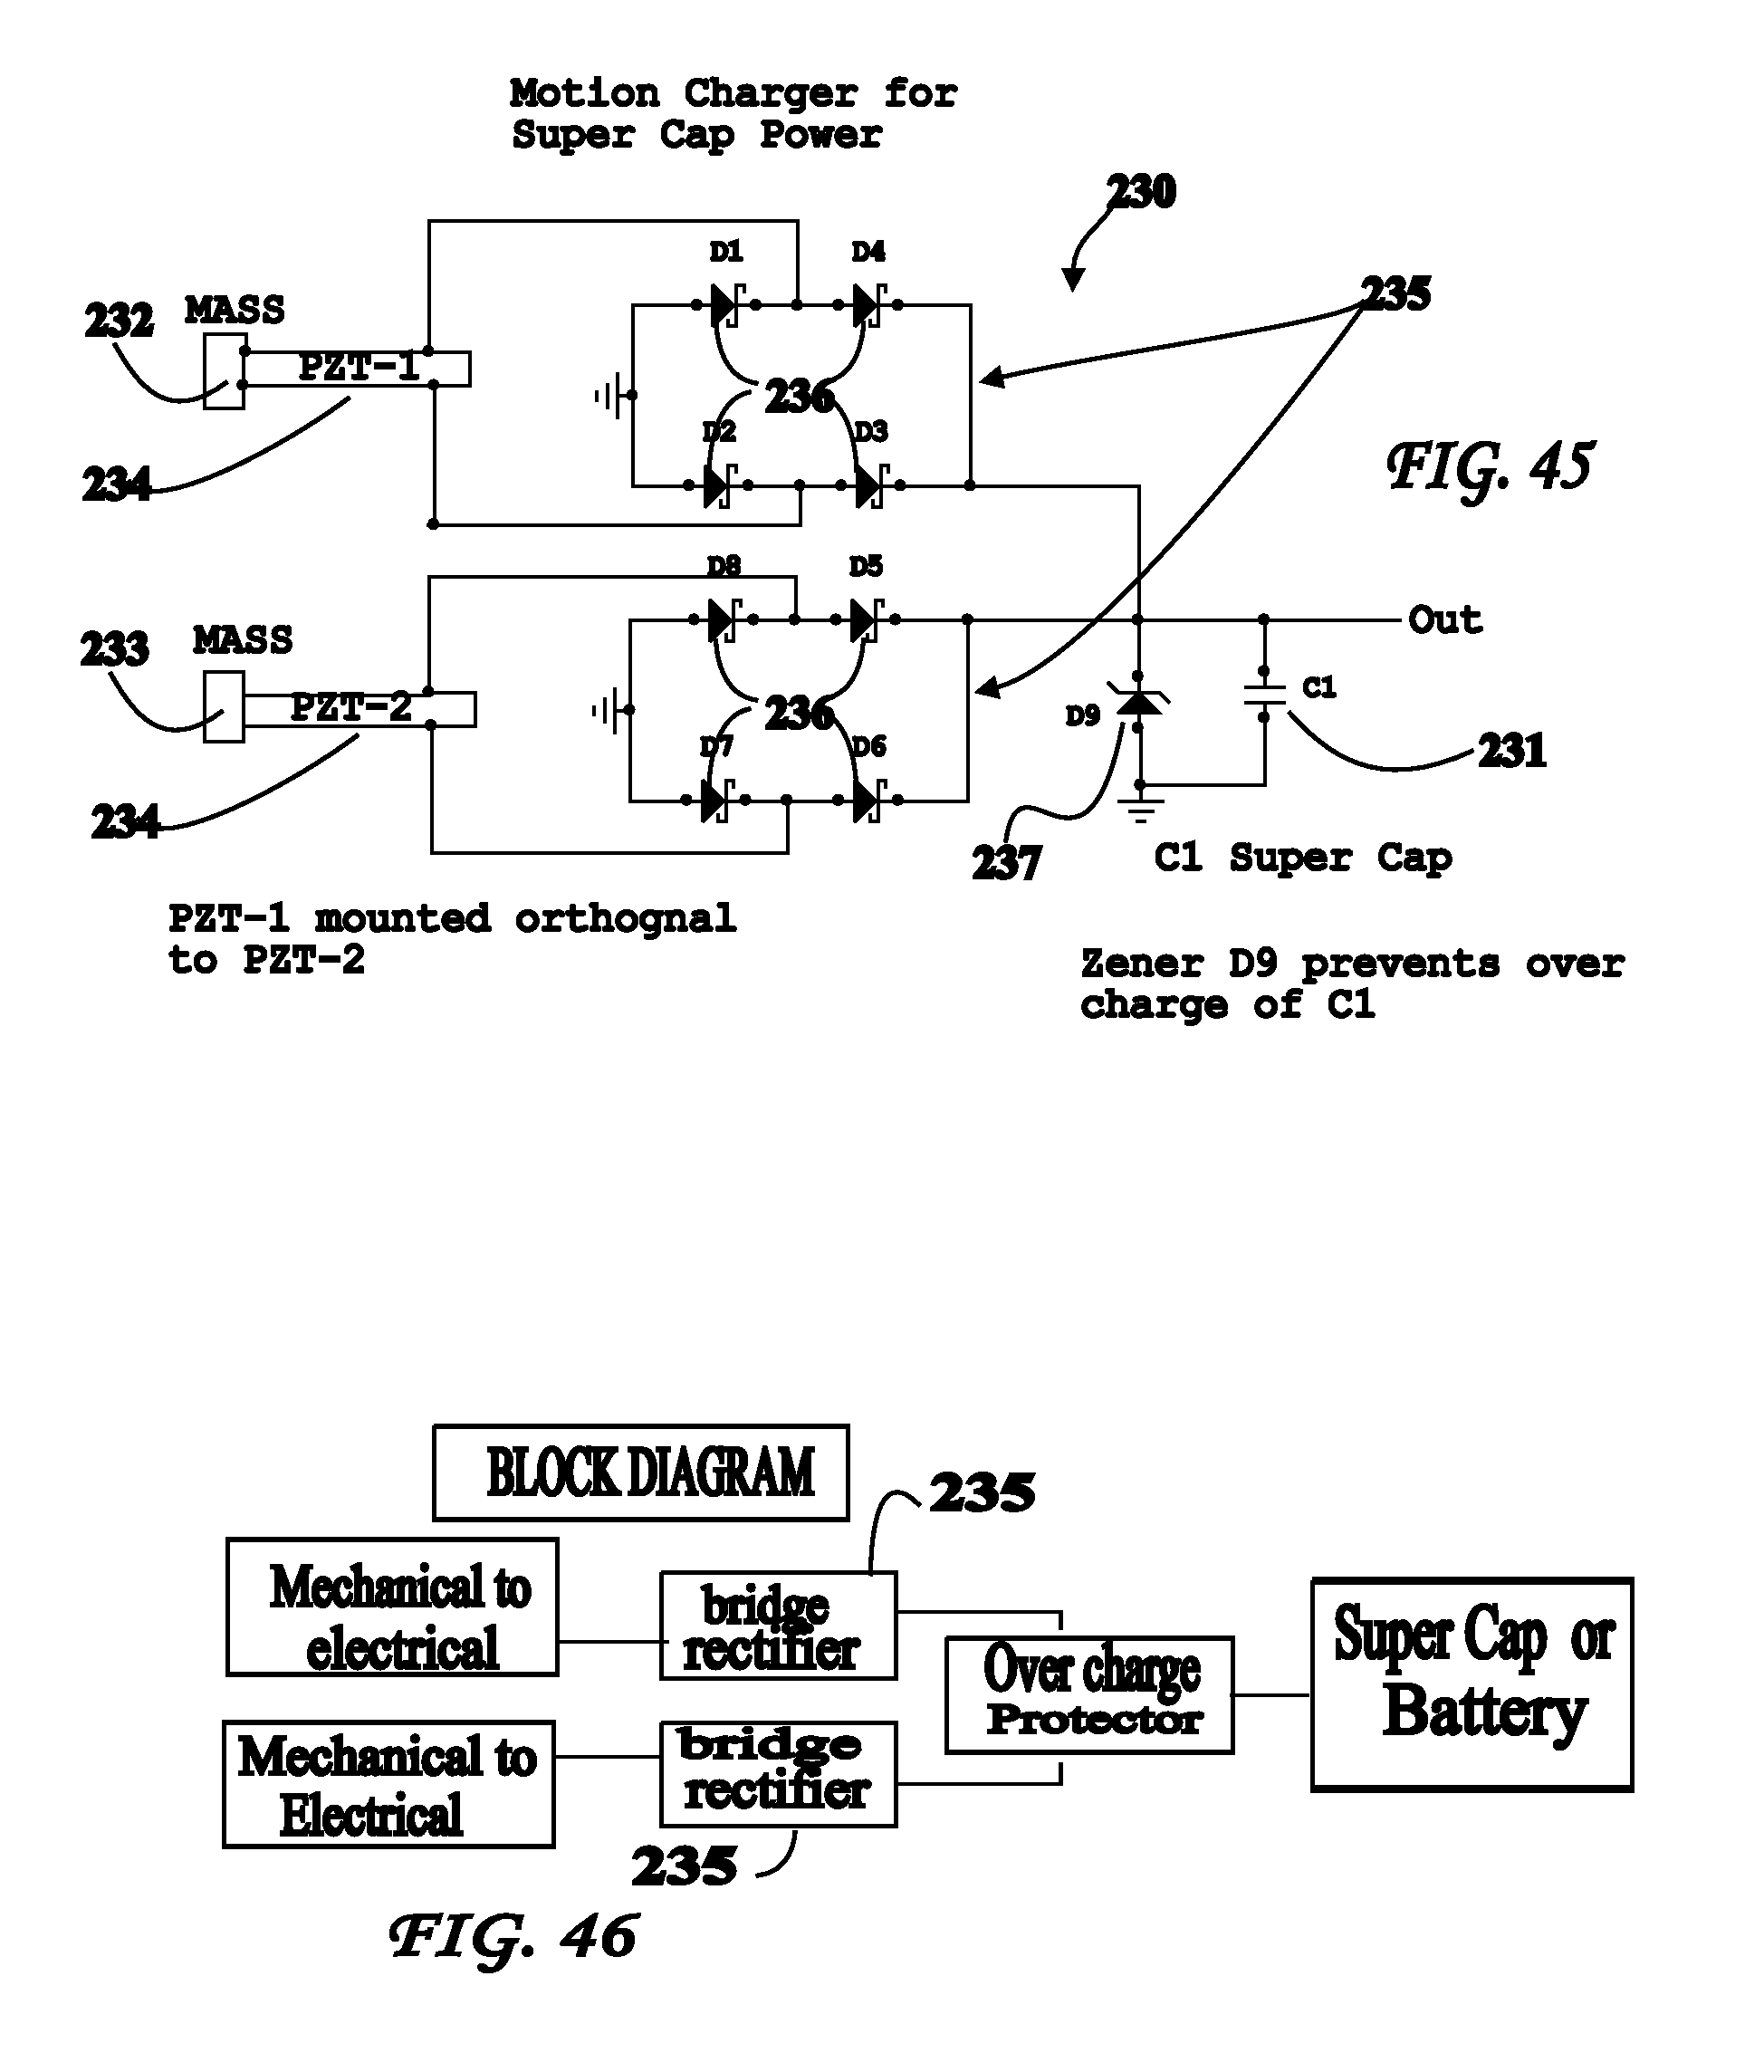 Coldweather Ignition Circuit Diagram Tradeoficcom Simple Wiring Audio Detector With Noise Limiter 1 Patent Us20080140278 Vehicle Software Upgrade Techniques Google